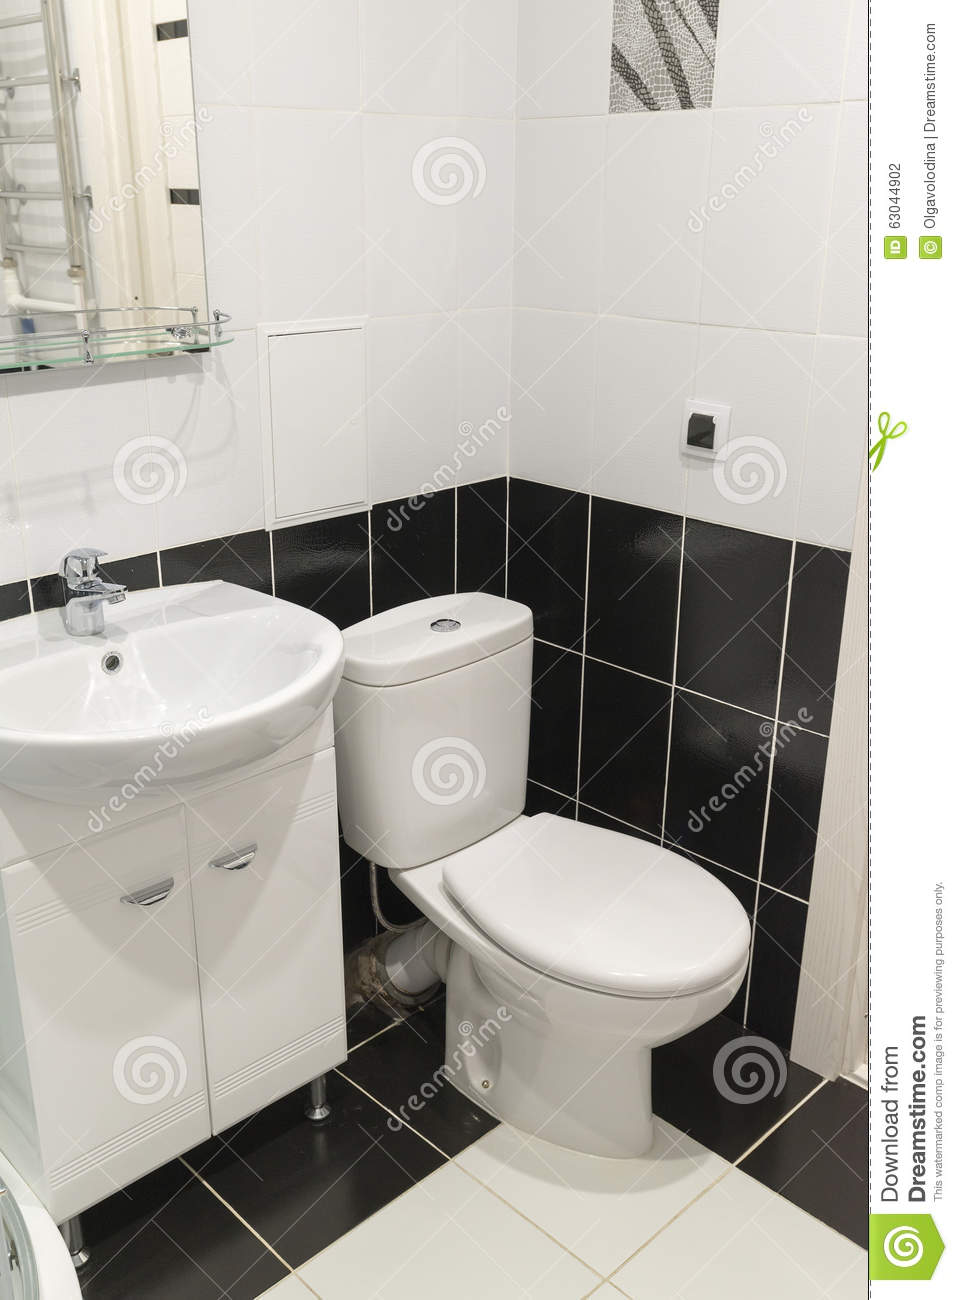 black and white toilet interior stock photo 49099272. Black Bedroom Furniture Sets. Home Design Ideas